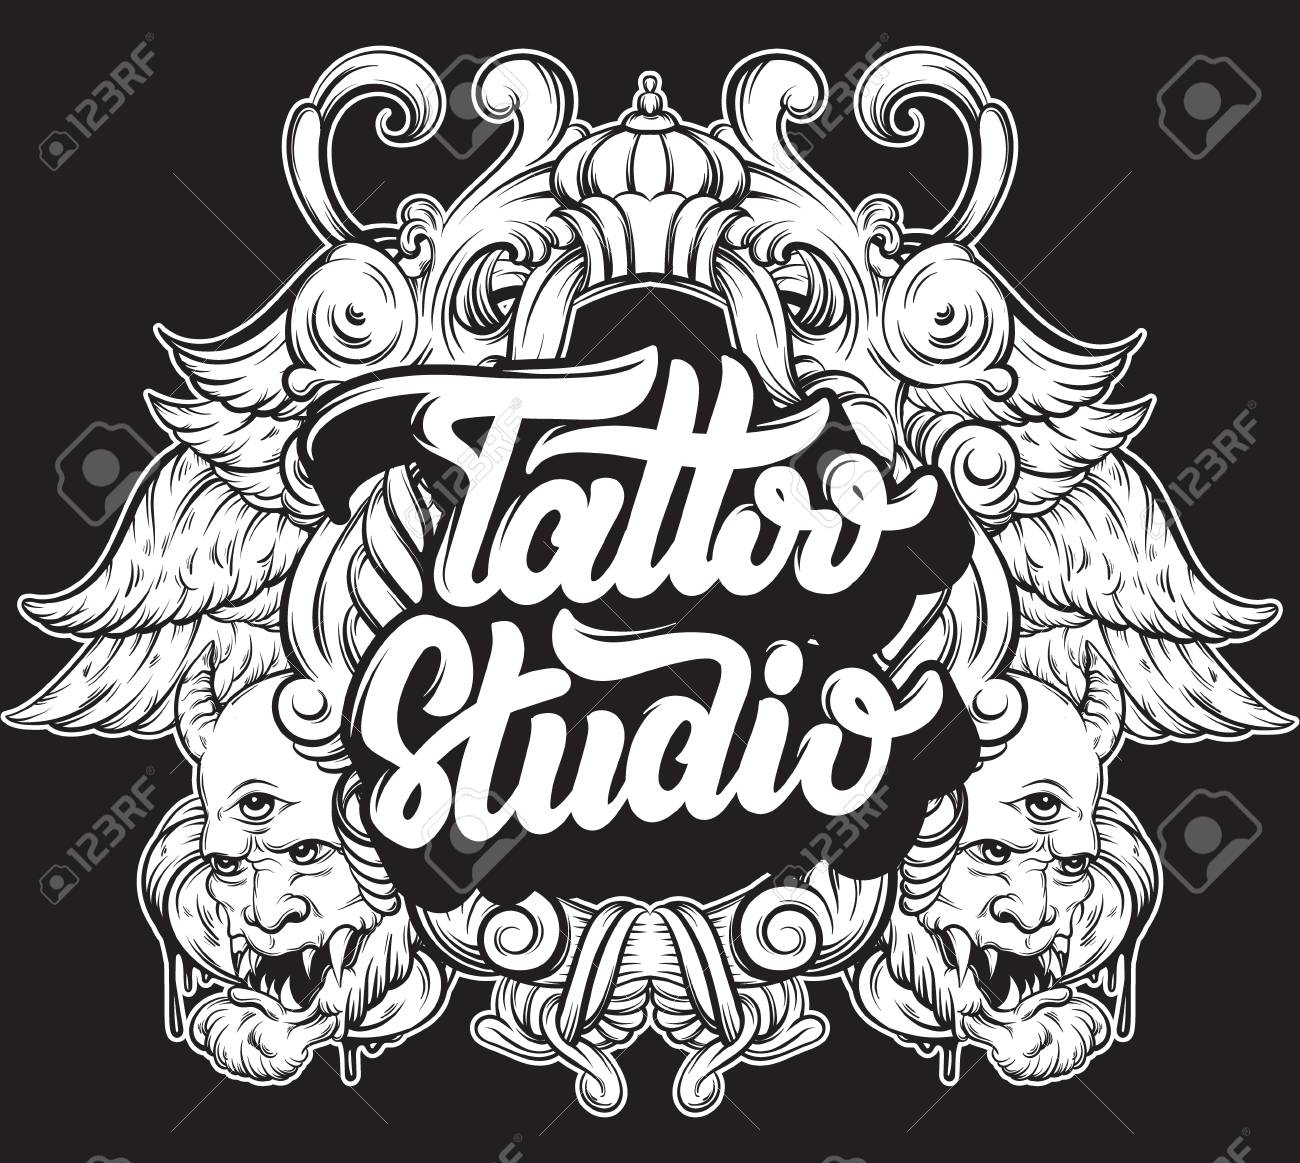 Tattoo Studio Vector Handwritten Trendy Lettering With Hand Drawn Illustration Of Daemons Baroque Frame